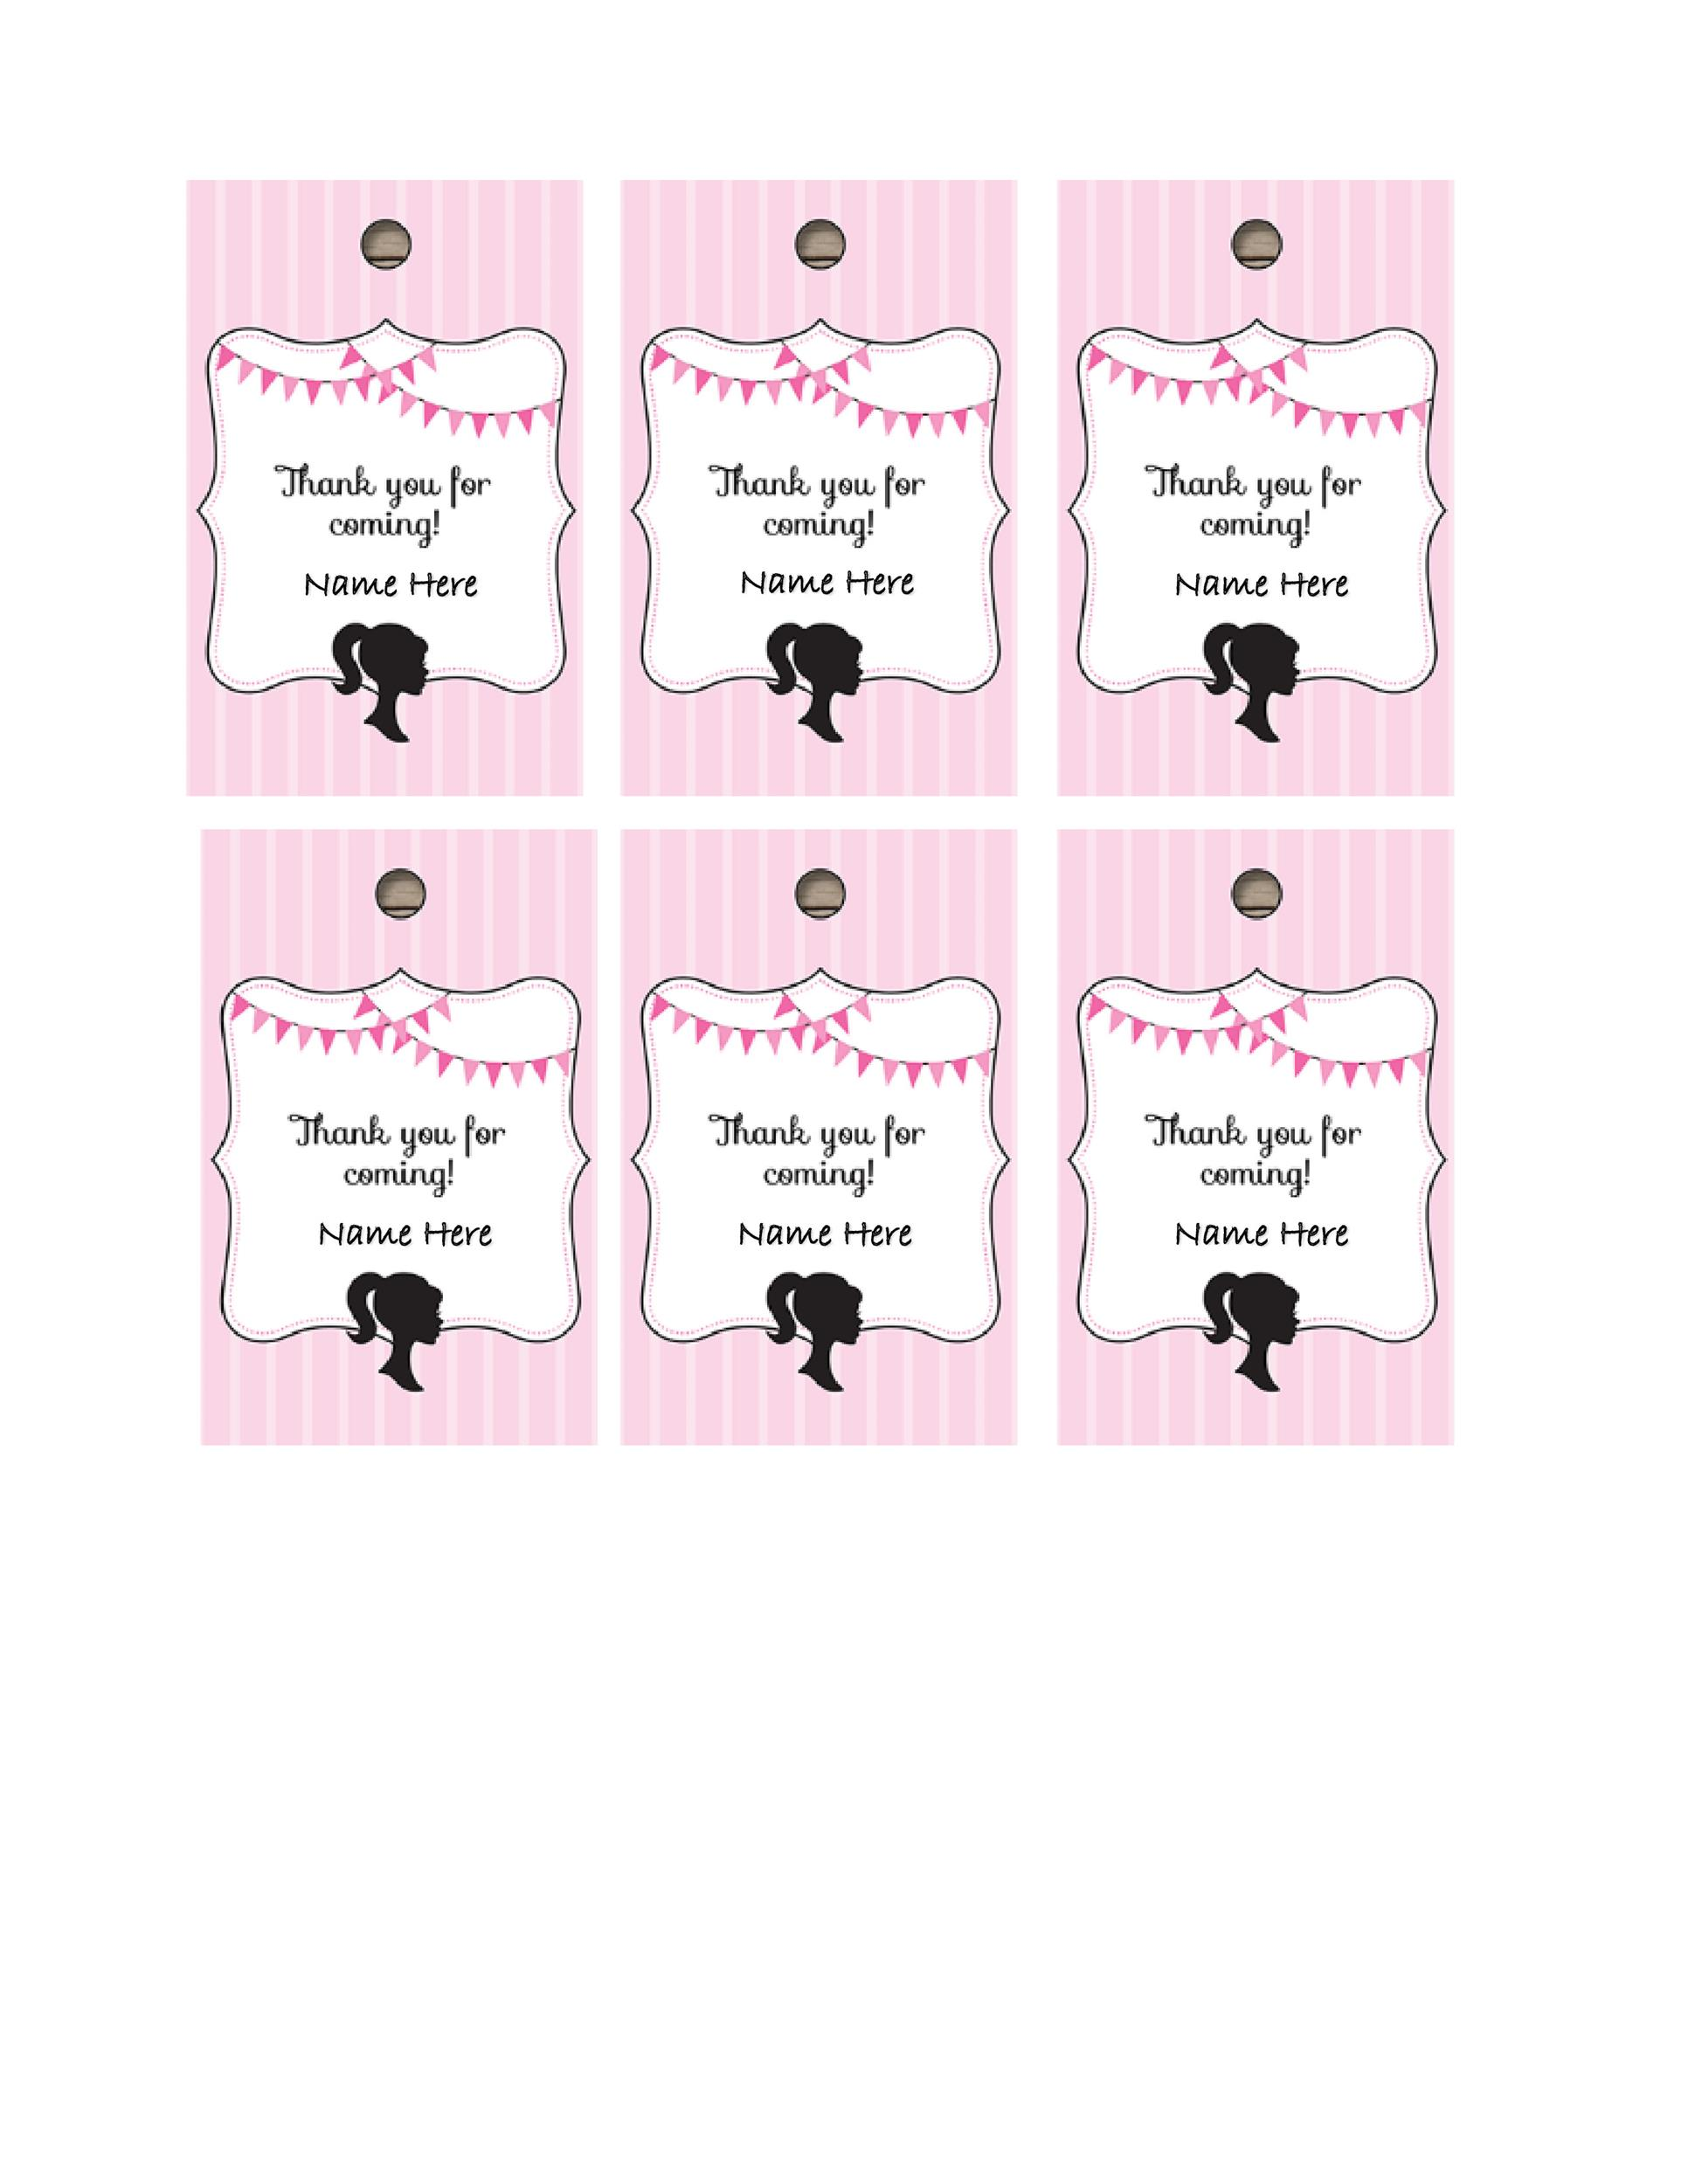 picture regarding Thank You Gift Tags Printable called 44 Absolutely free Printable Present Tag Templates ᐅ Template Lab